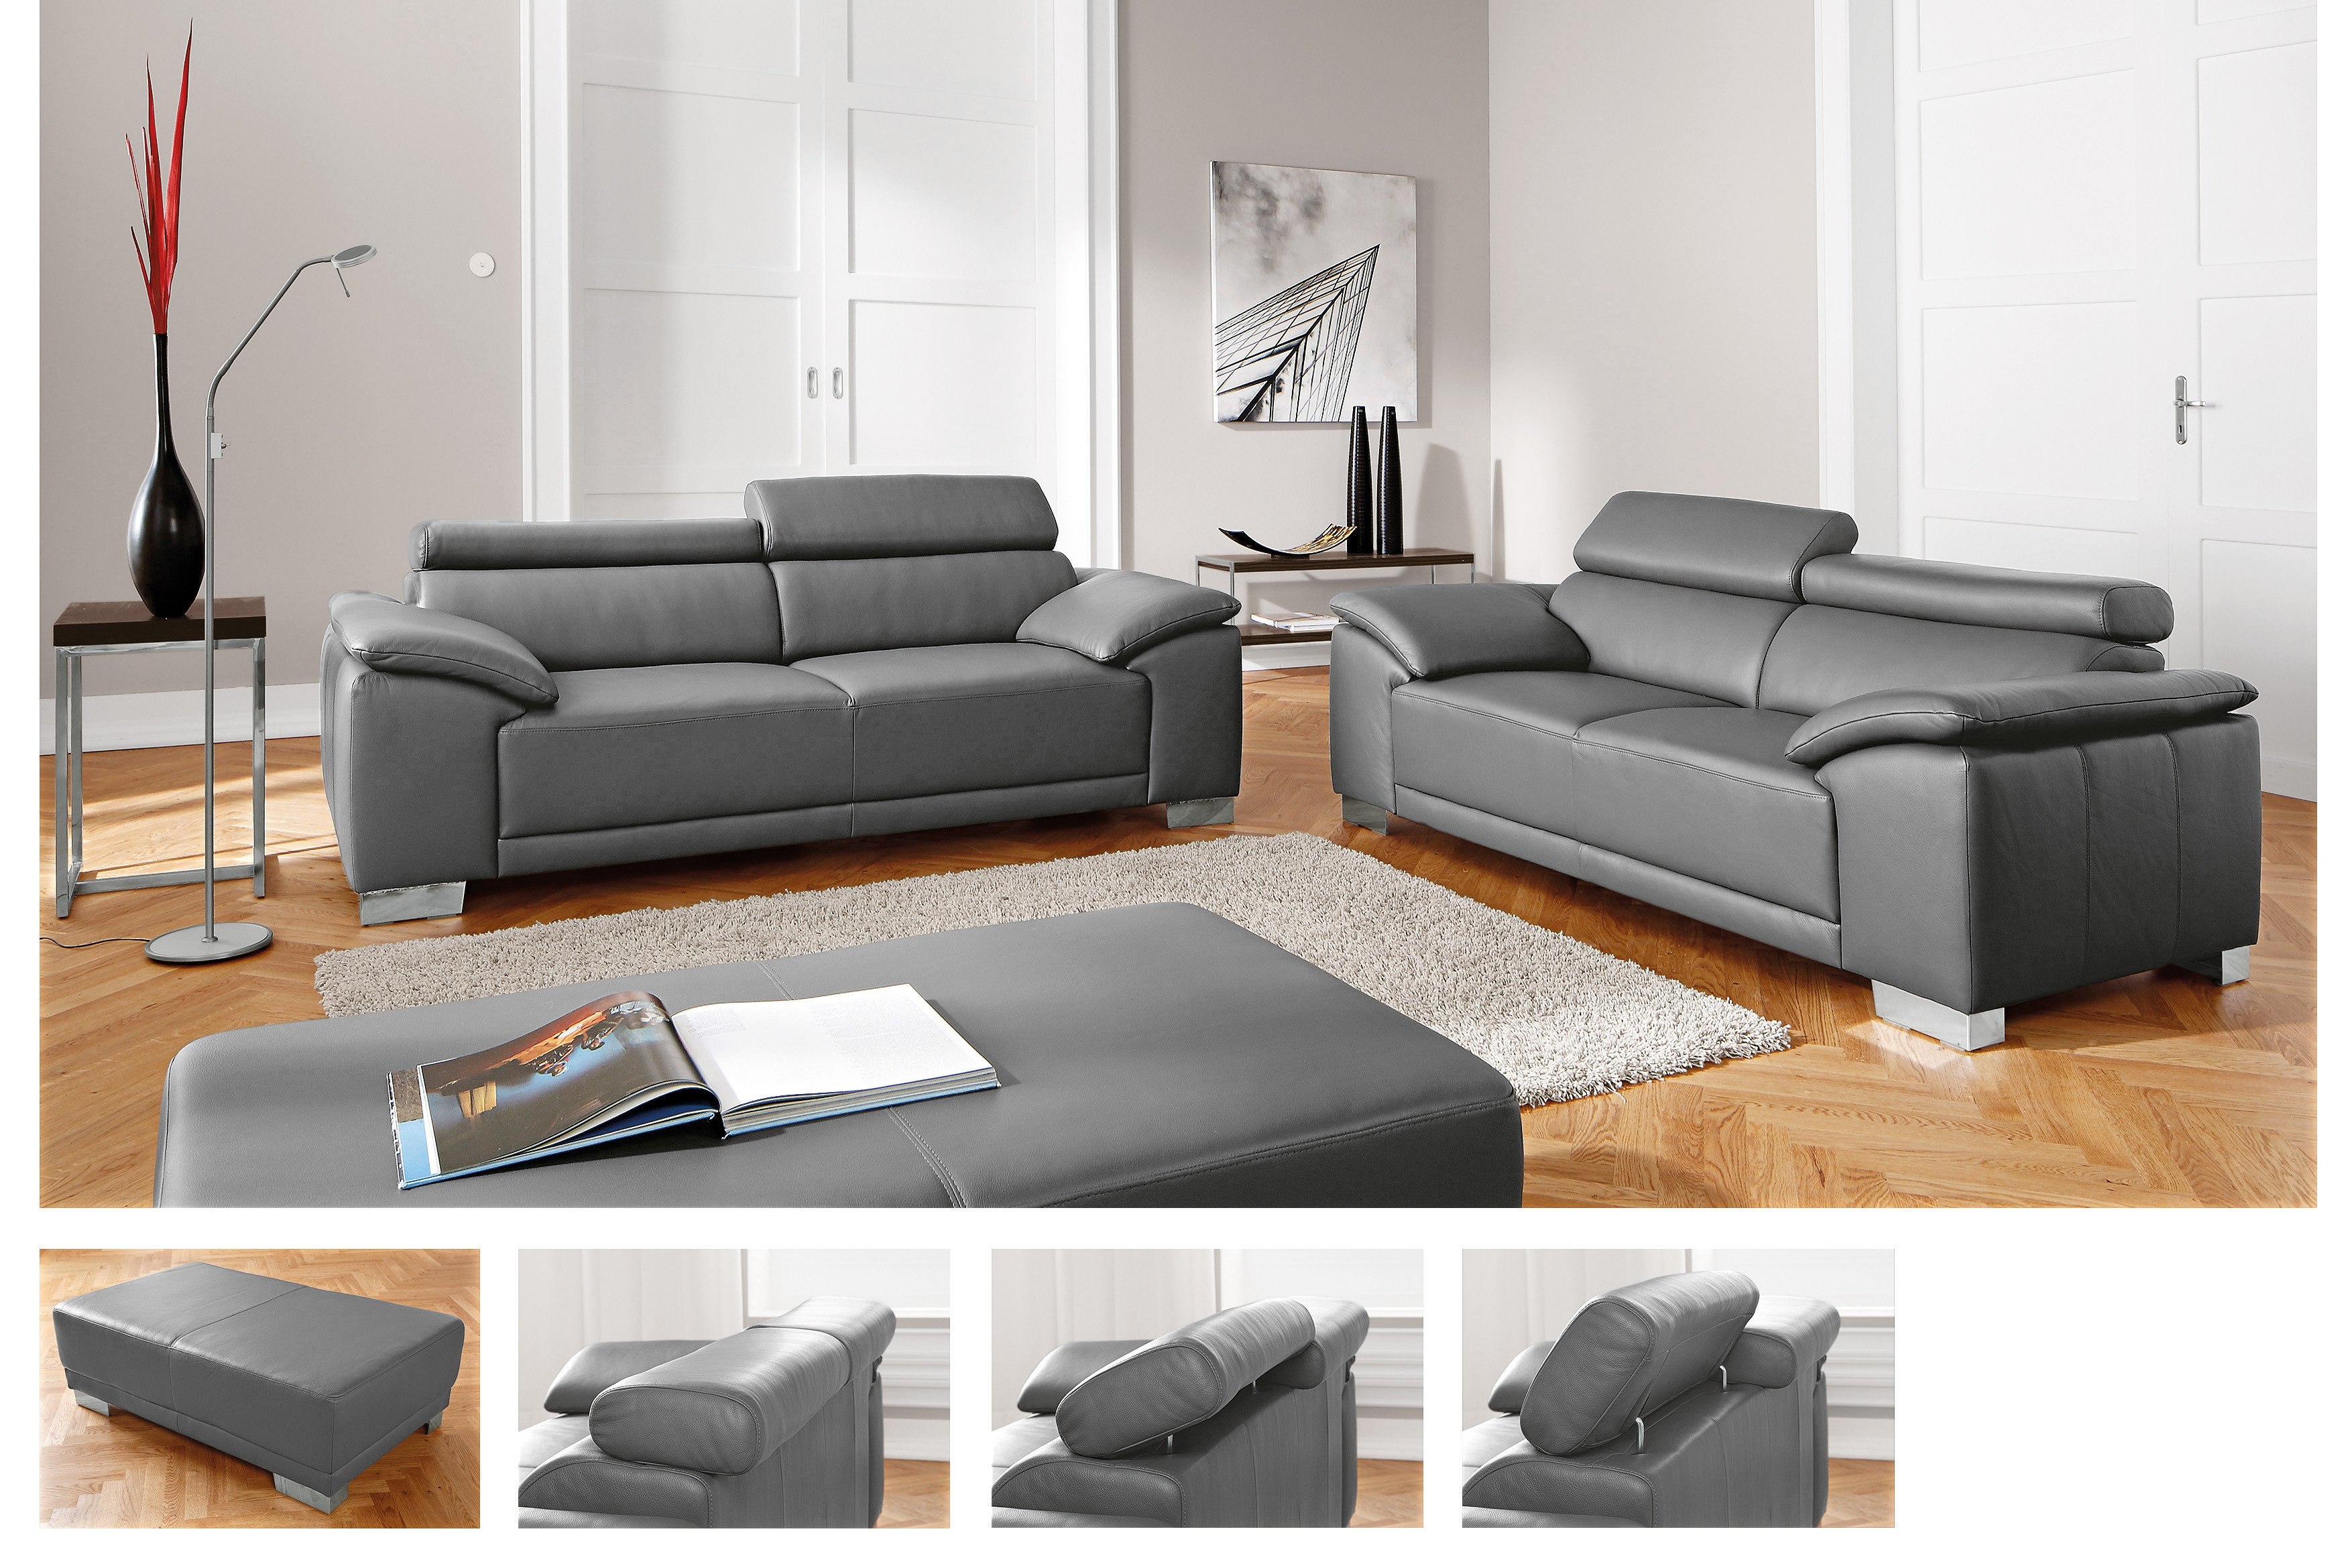 candy amalfi ledersofa in grau m bel letz ihr online shop. Black Bedroom Furniture Sets. Home Design Ideas